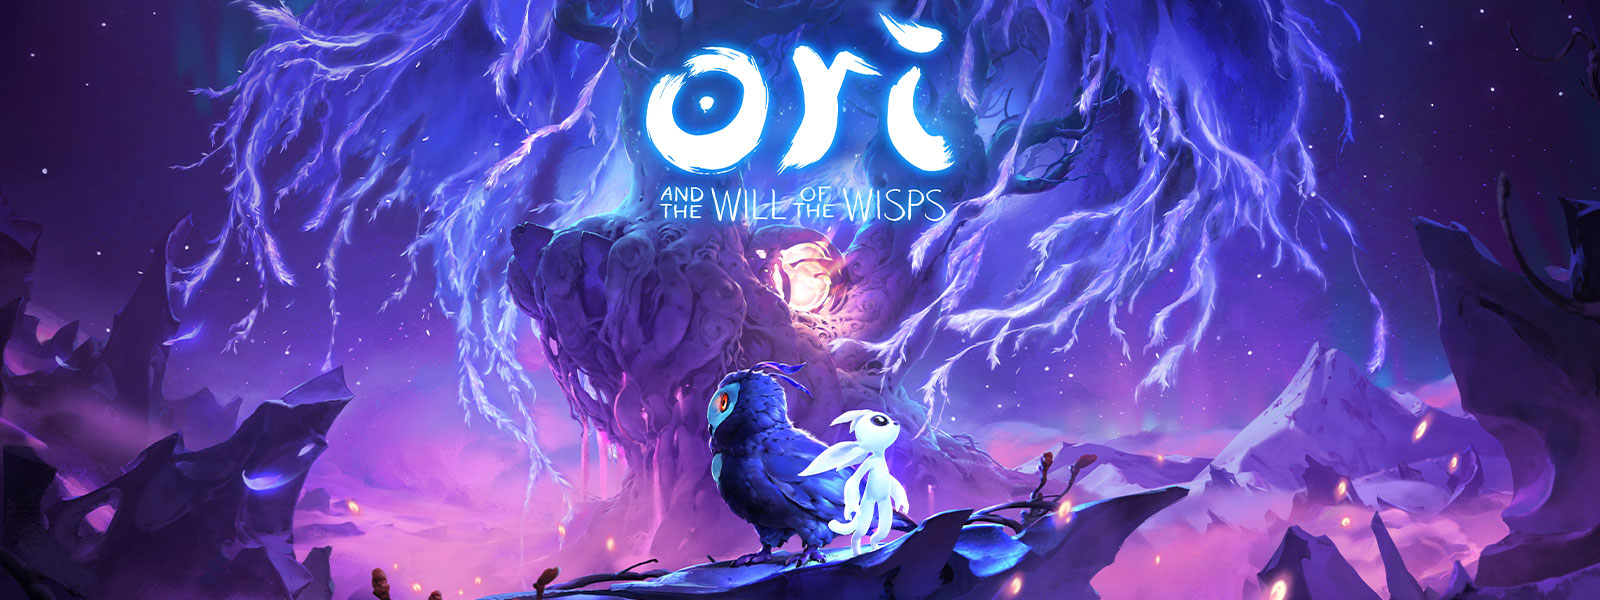 Ori and the Will of the Wisps, Ori se para junto a una lechuza de árbol violeta fantástico